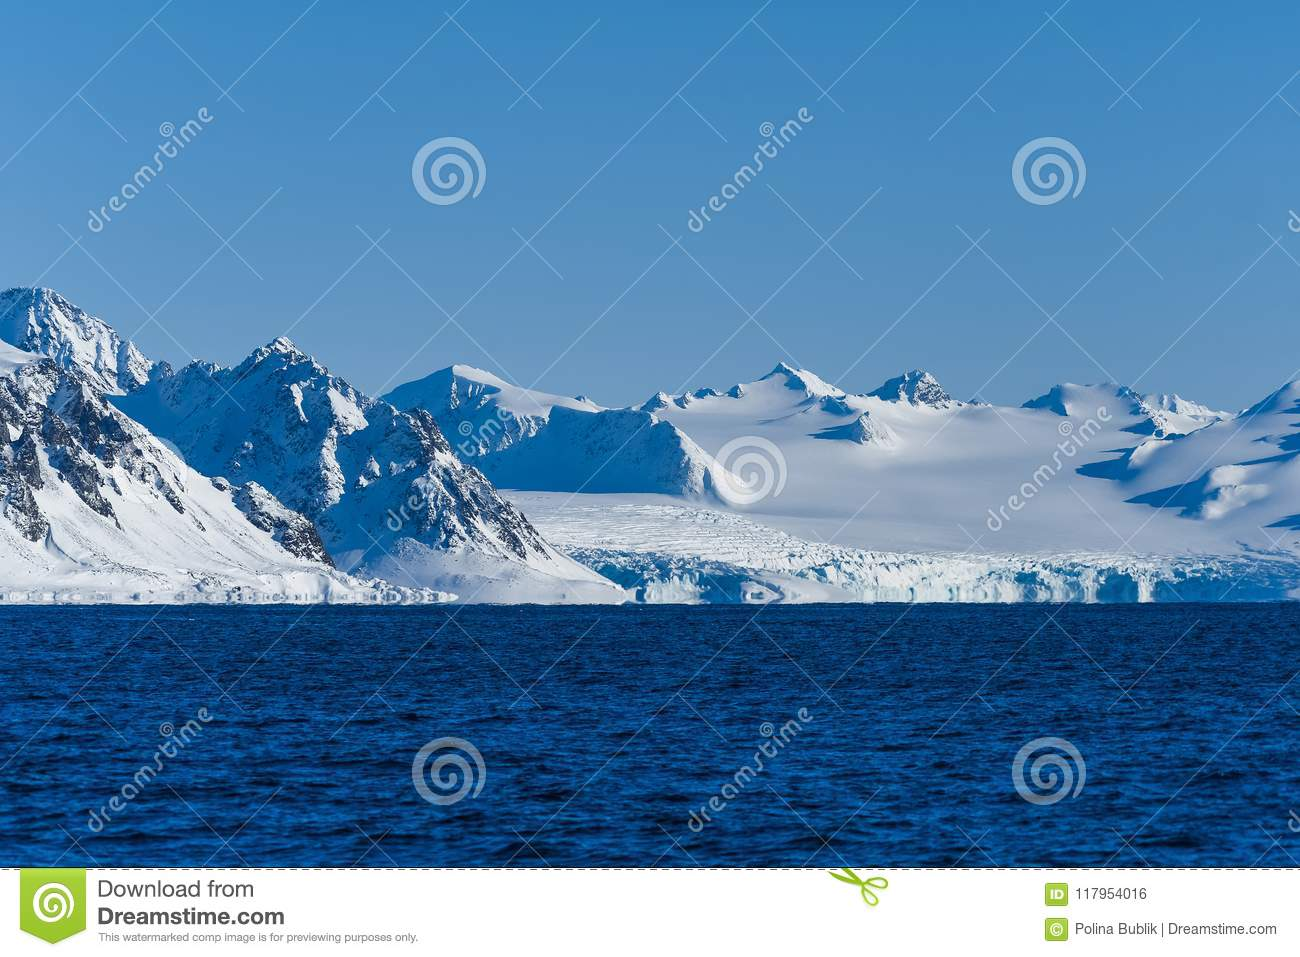 landscape ice nature of the glacier mountains of Spitsbergen Longyearbyen Svalbard arctic ocean winter polar day sunset sky